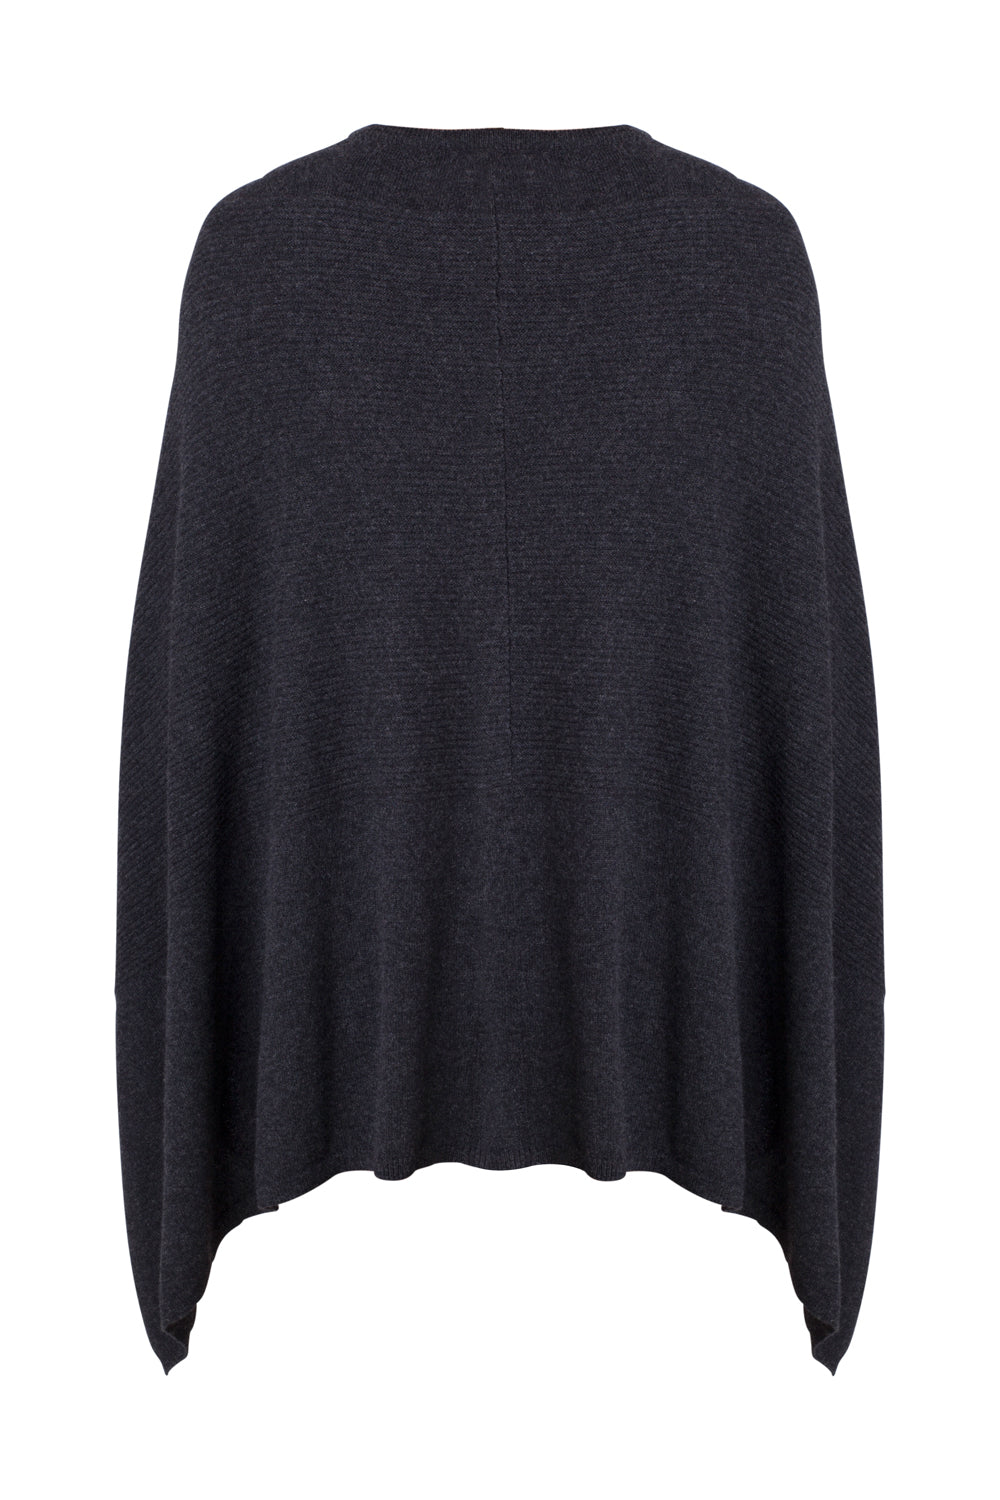 Cape Sweater in Charcoal